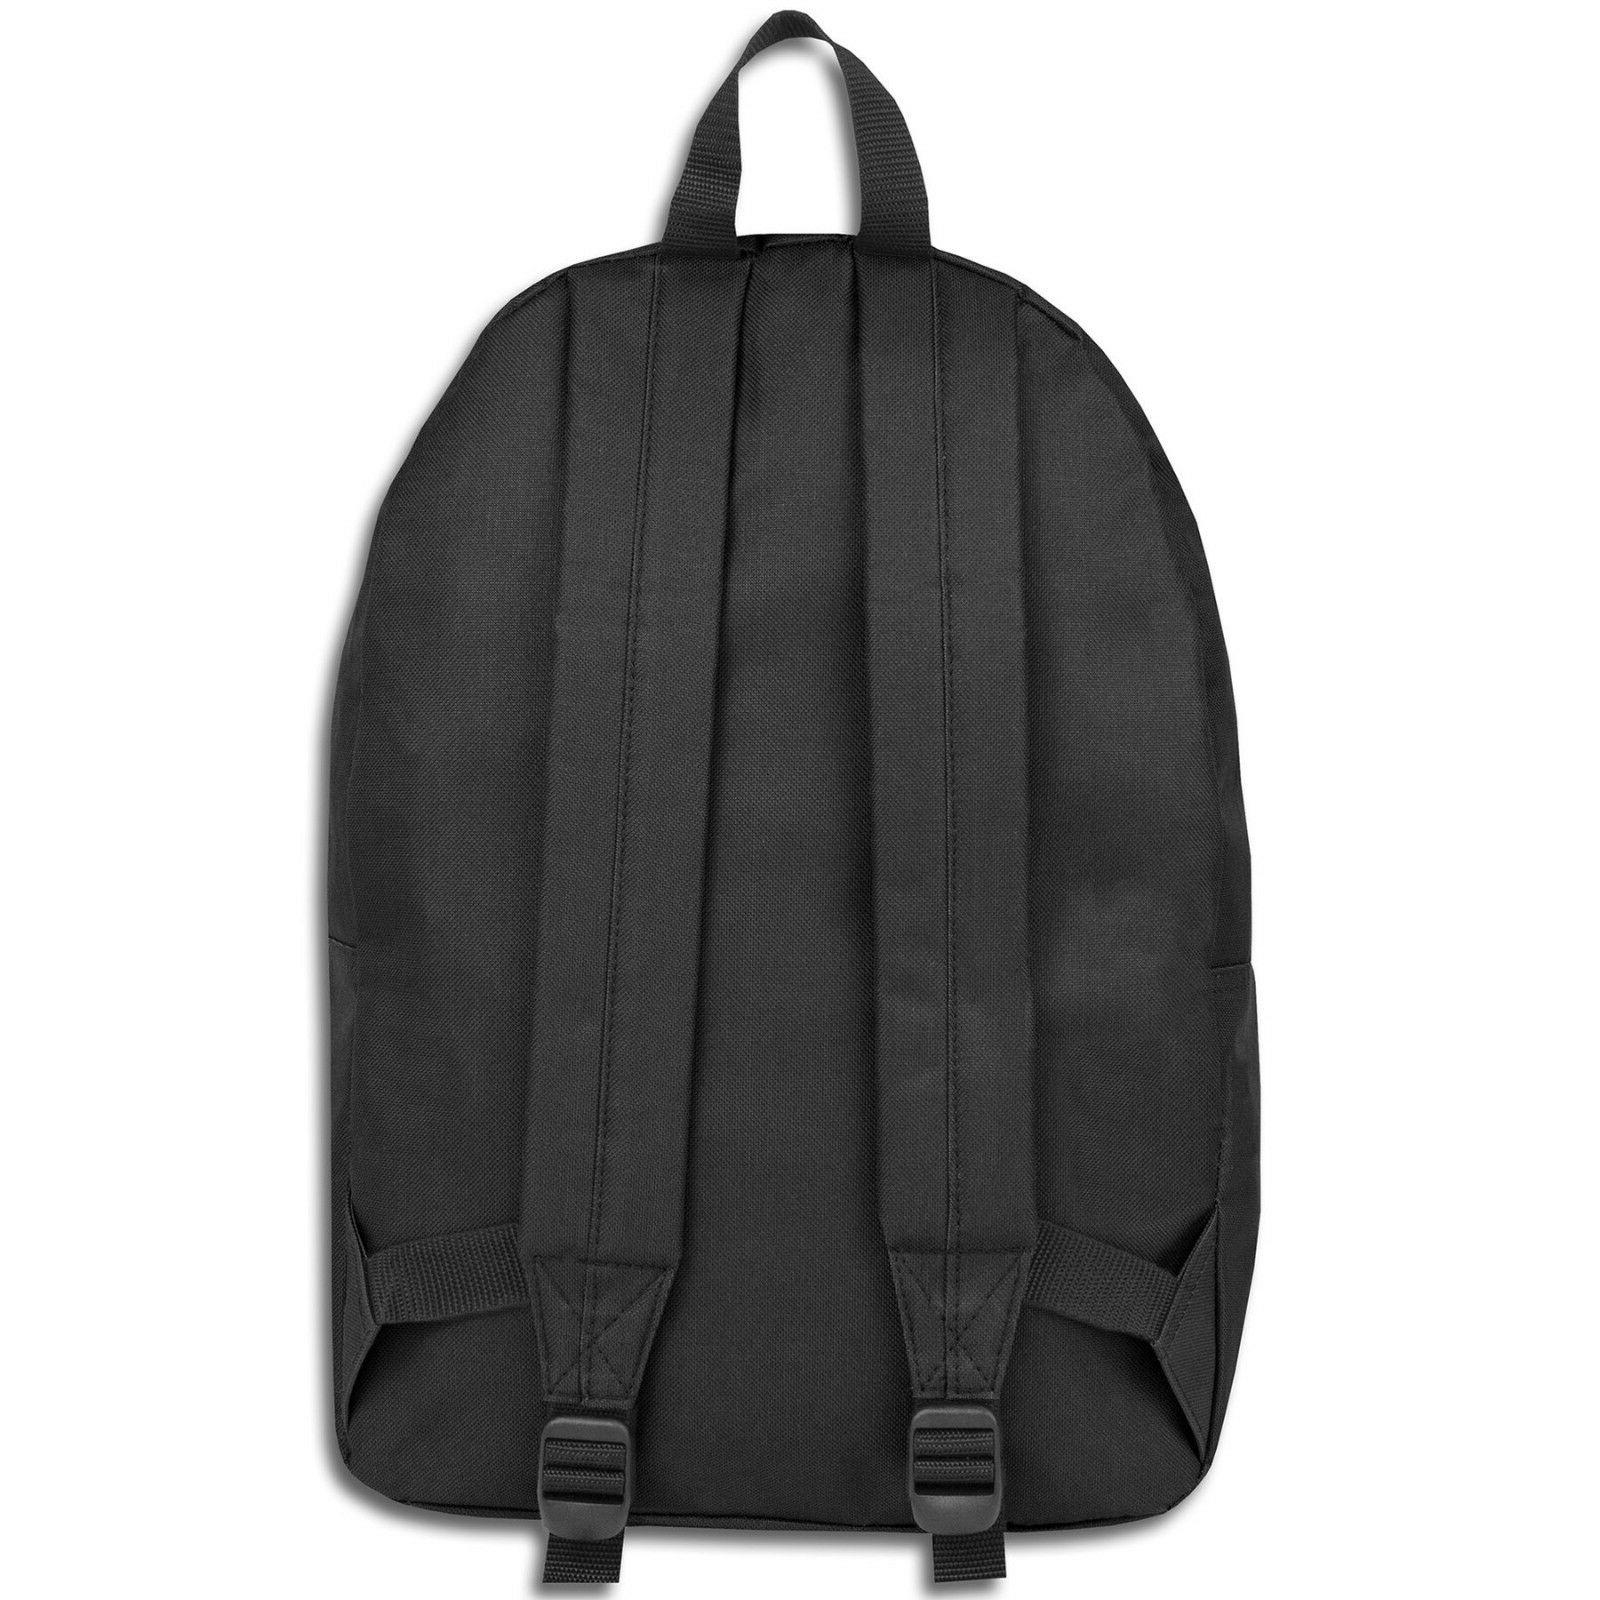 Classic Backpacks in Case Pack Assorted